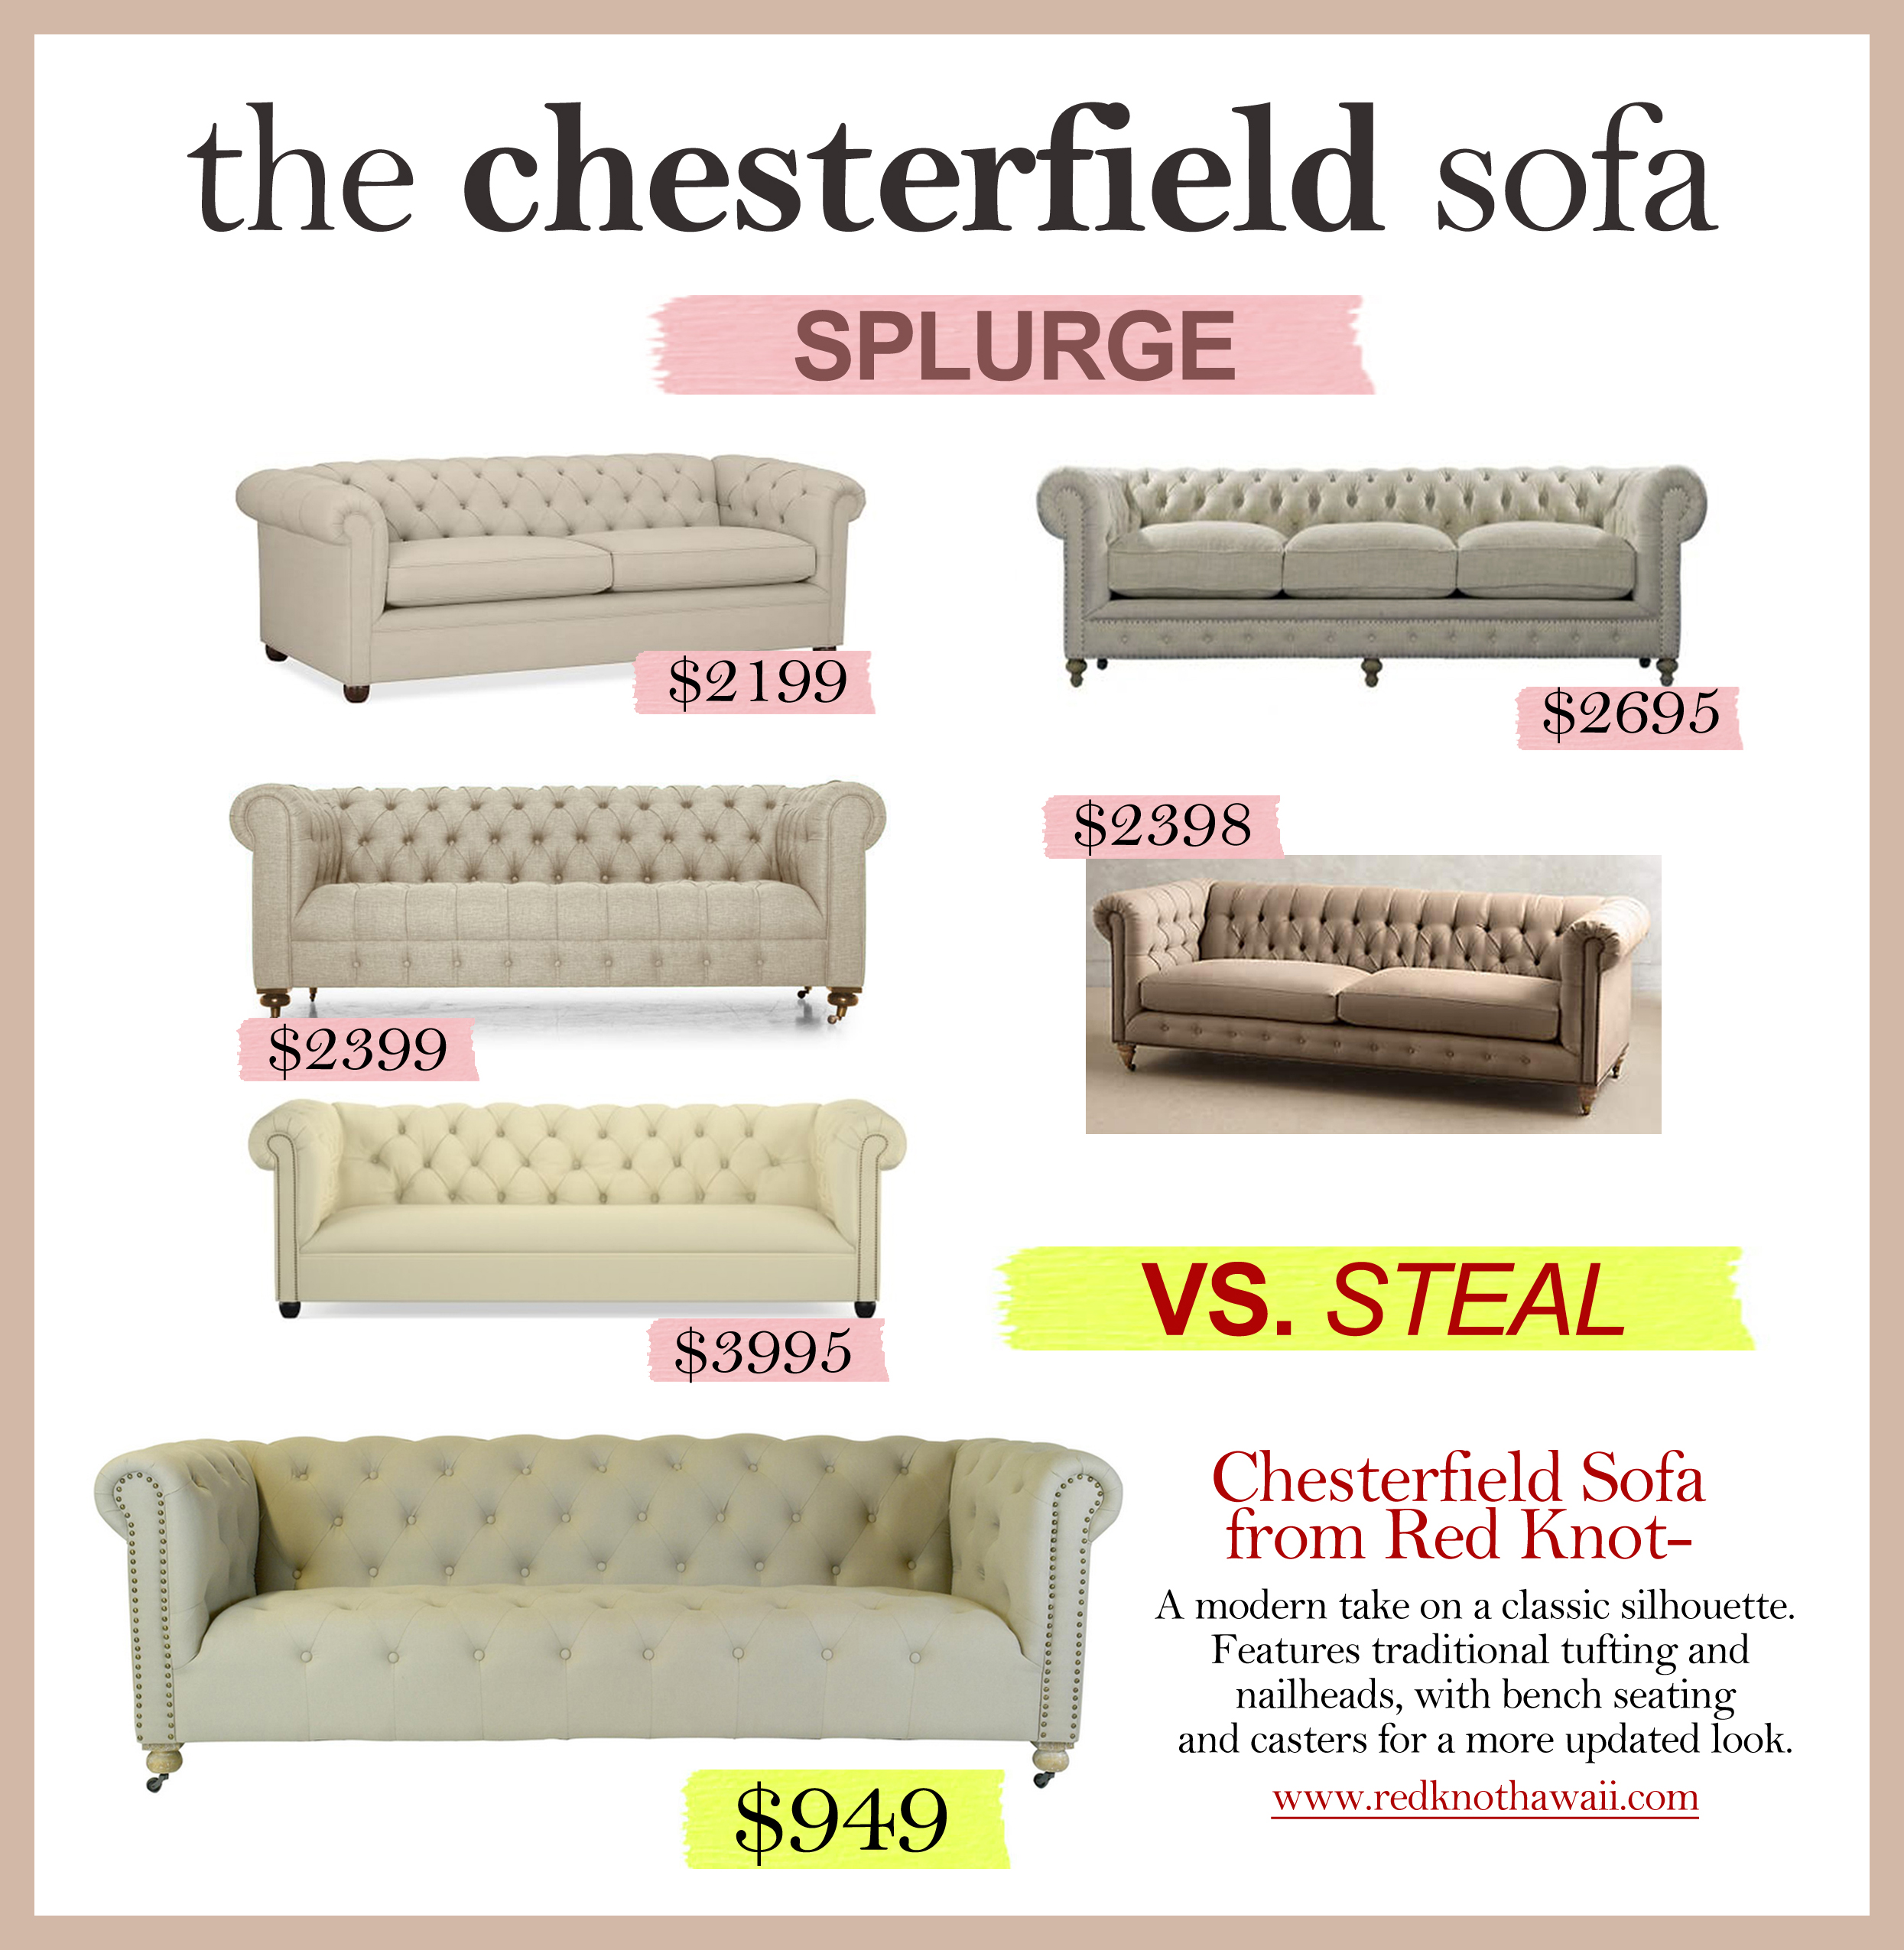 Get The Look for Less – The Chesterfield Sofa